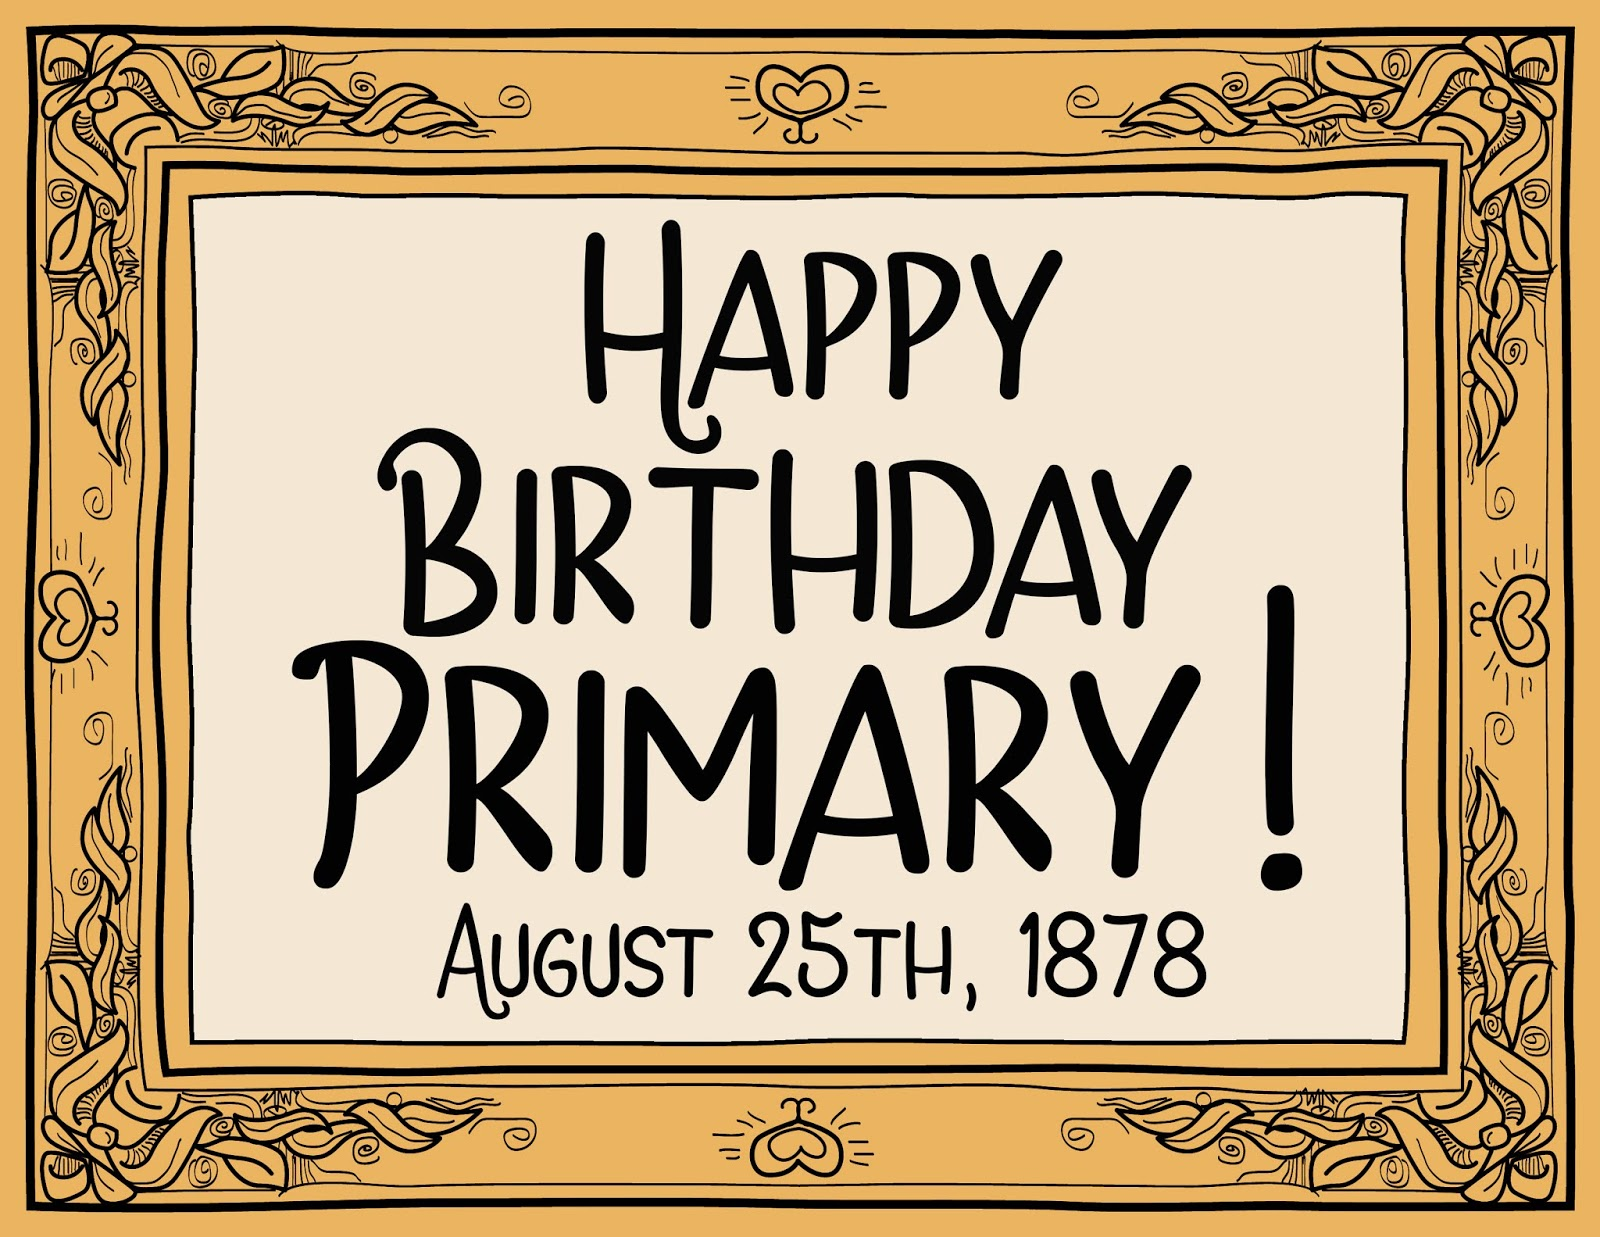 Camille's Primary Ideas: celebrate the primary's birthday by singing We Welcome You